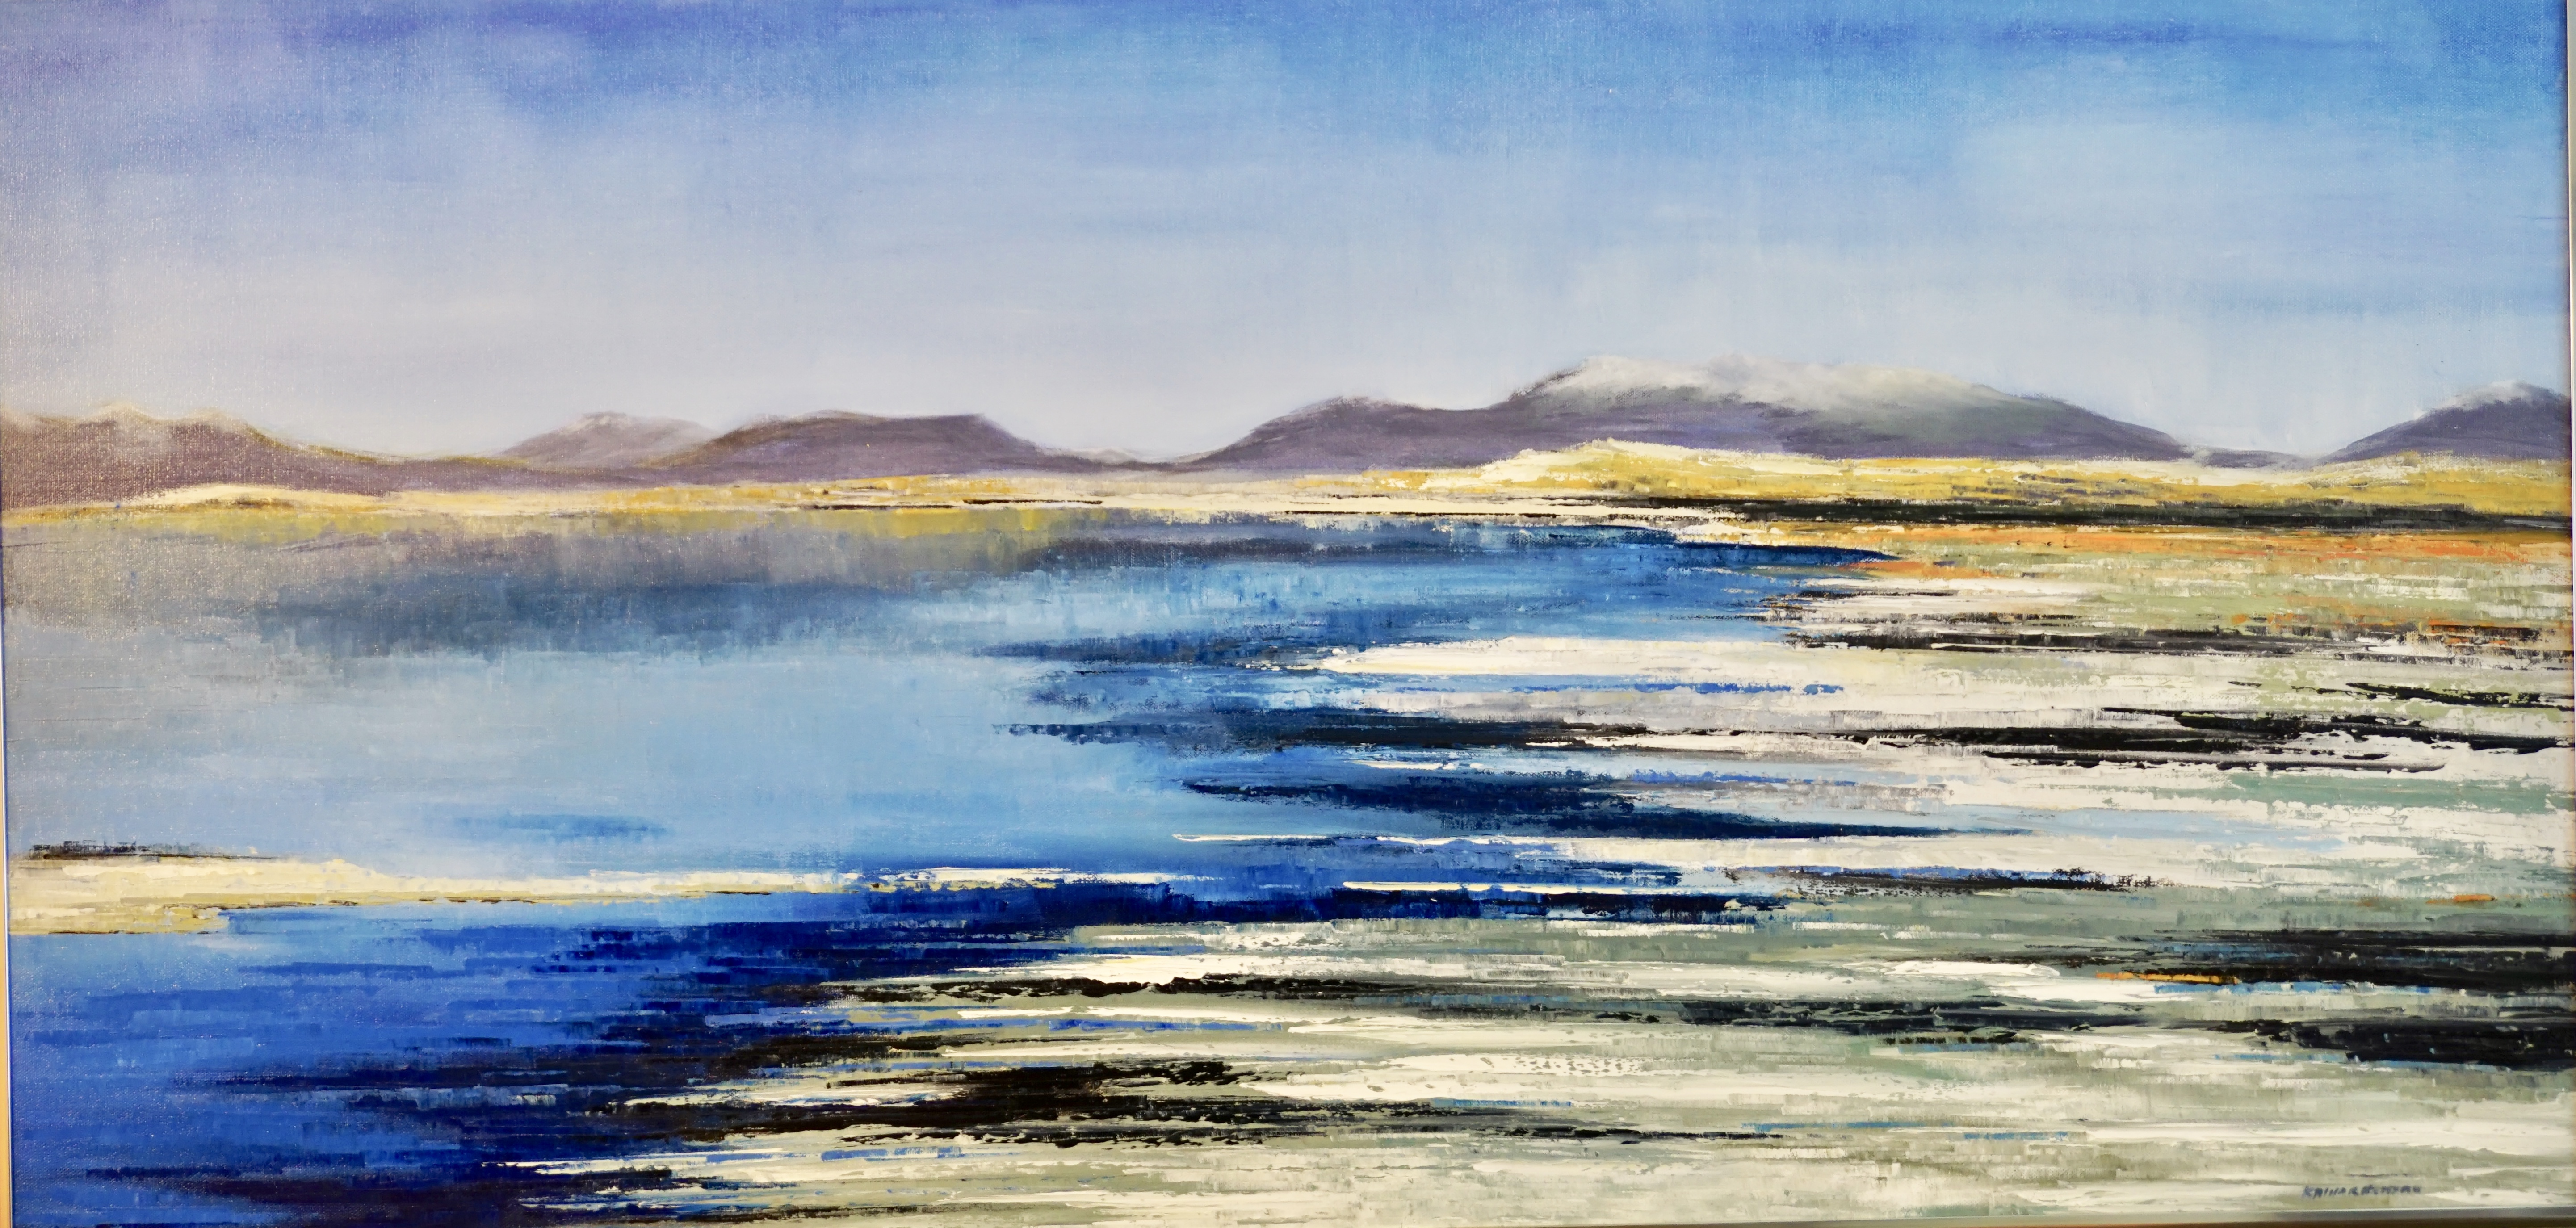 Shores of the Great Salt Lake